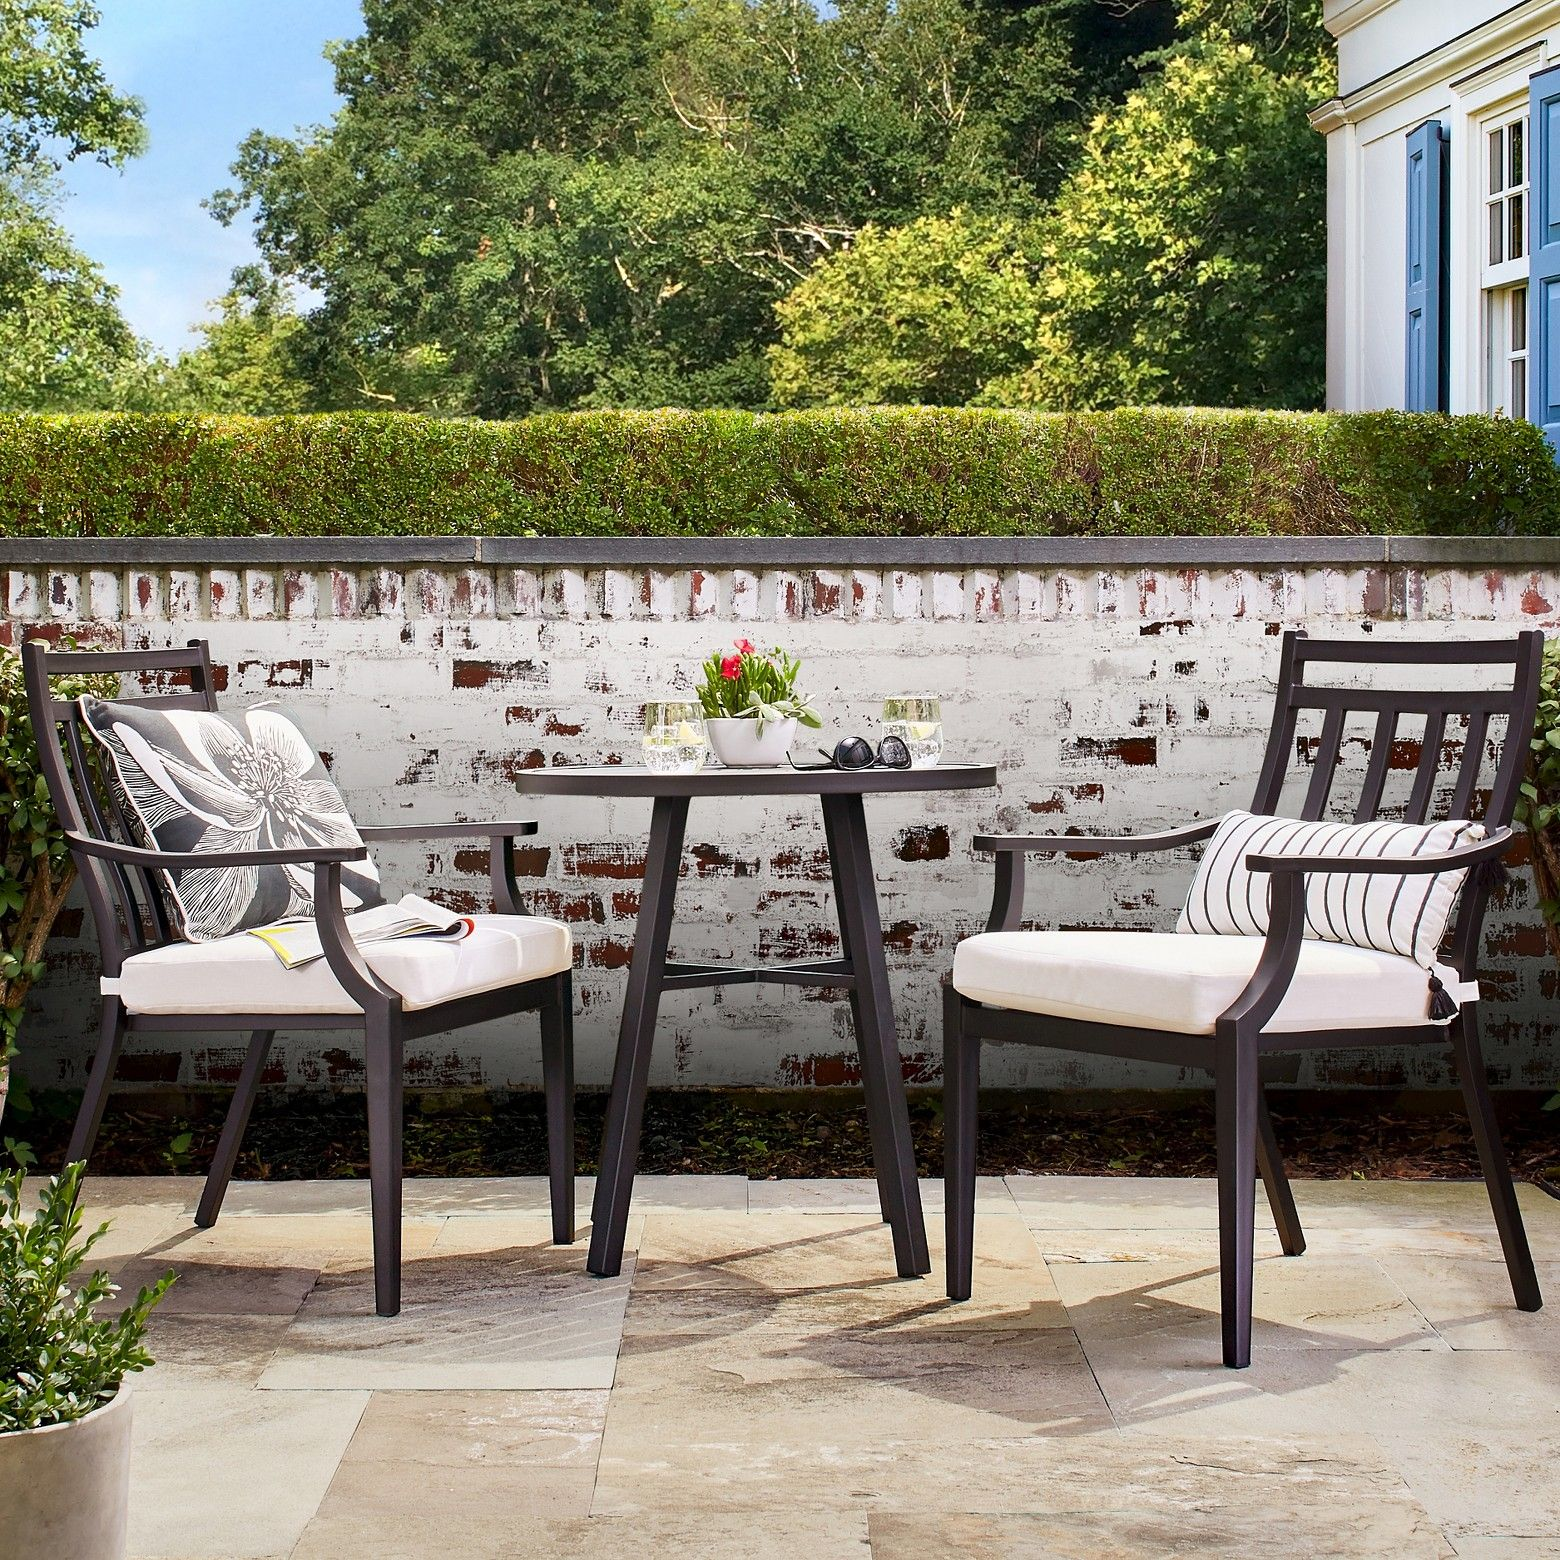 Bring The Indoors Outside With 3pc Balcony Patio Dining Set From Threshold Casual